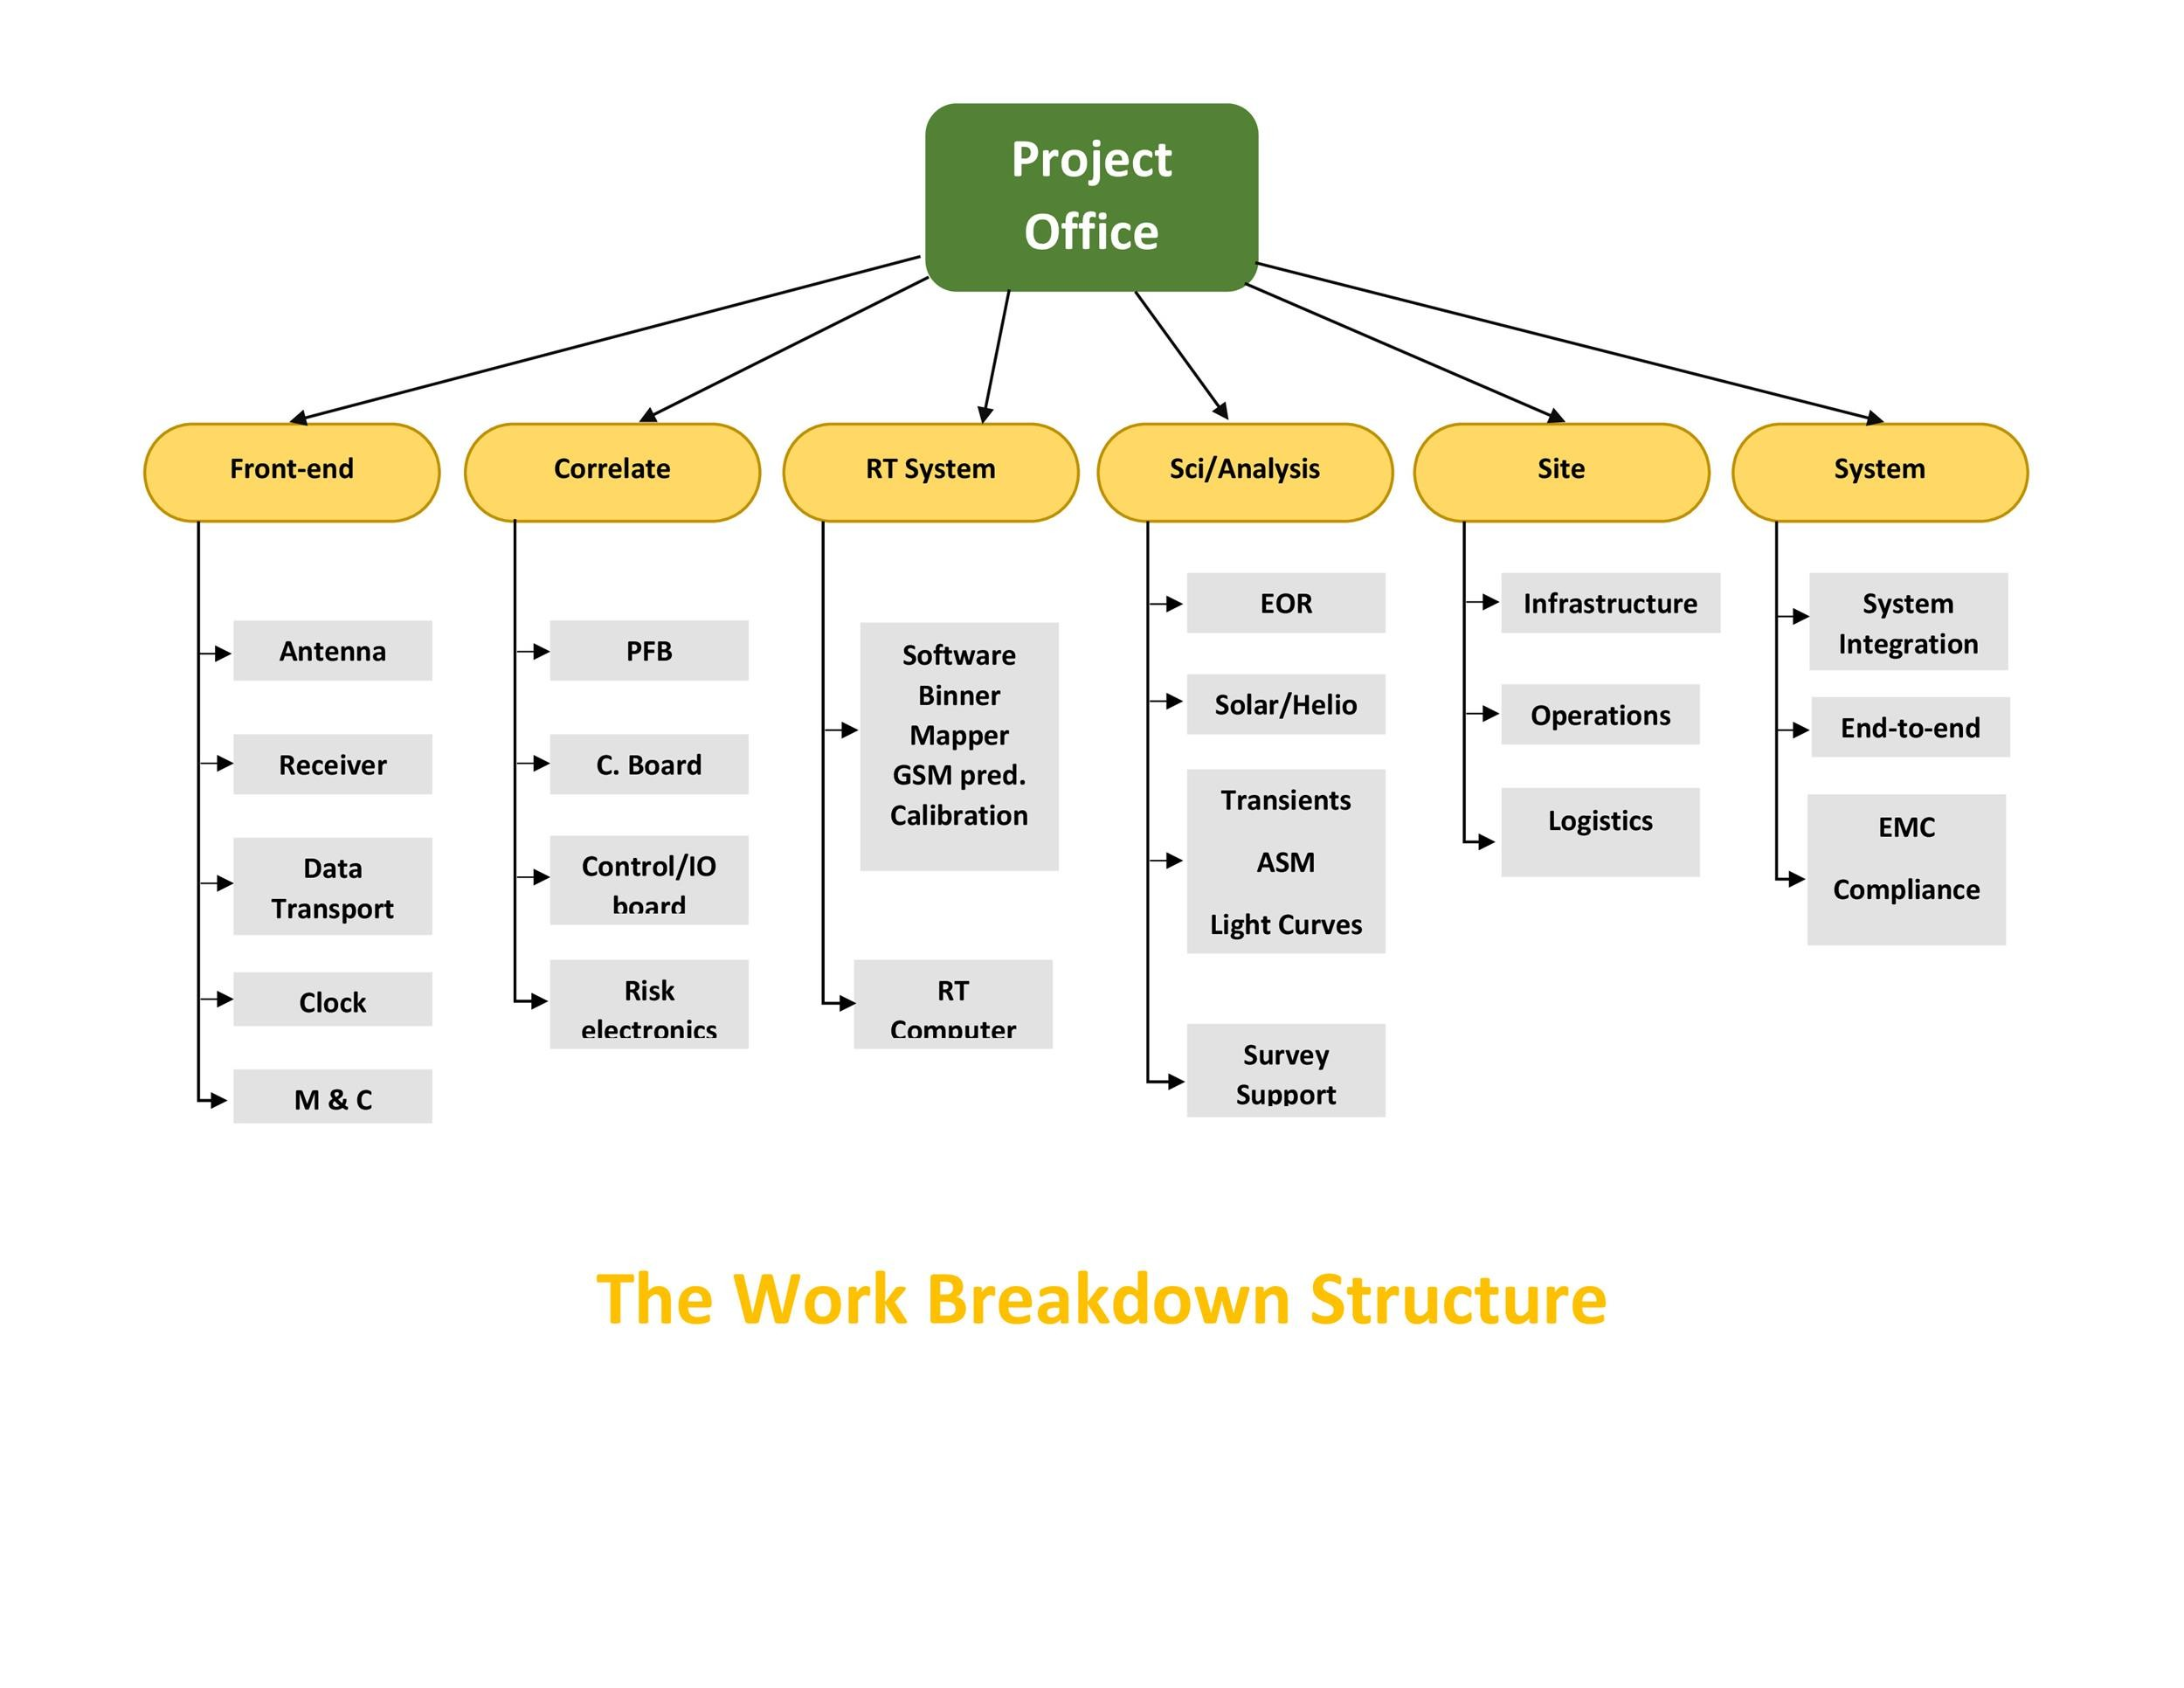 30 Work Breakdown Structure Templates Free Template Lab – Work Breakdown Structure Template